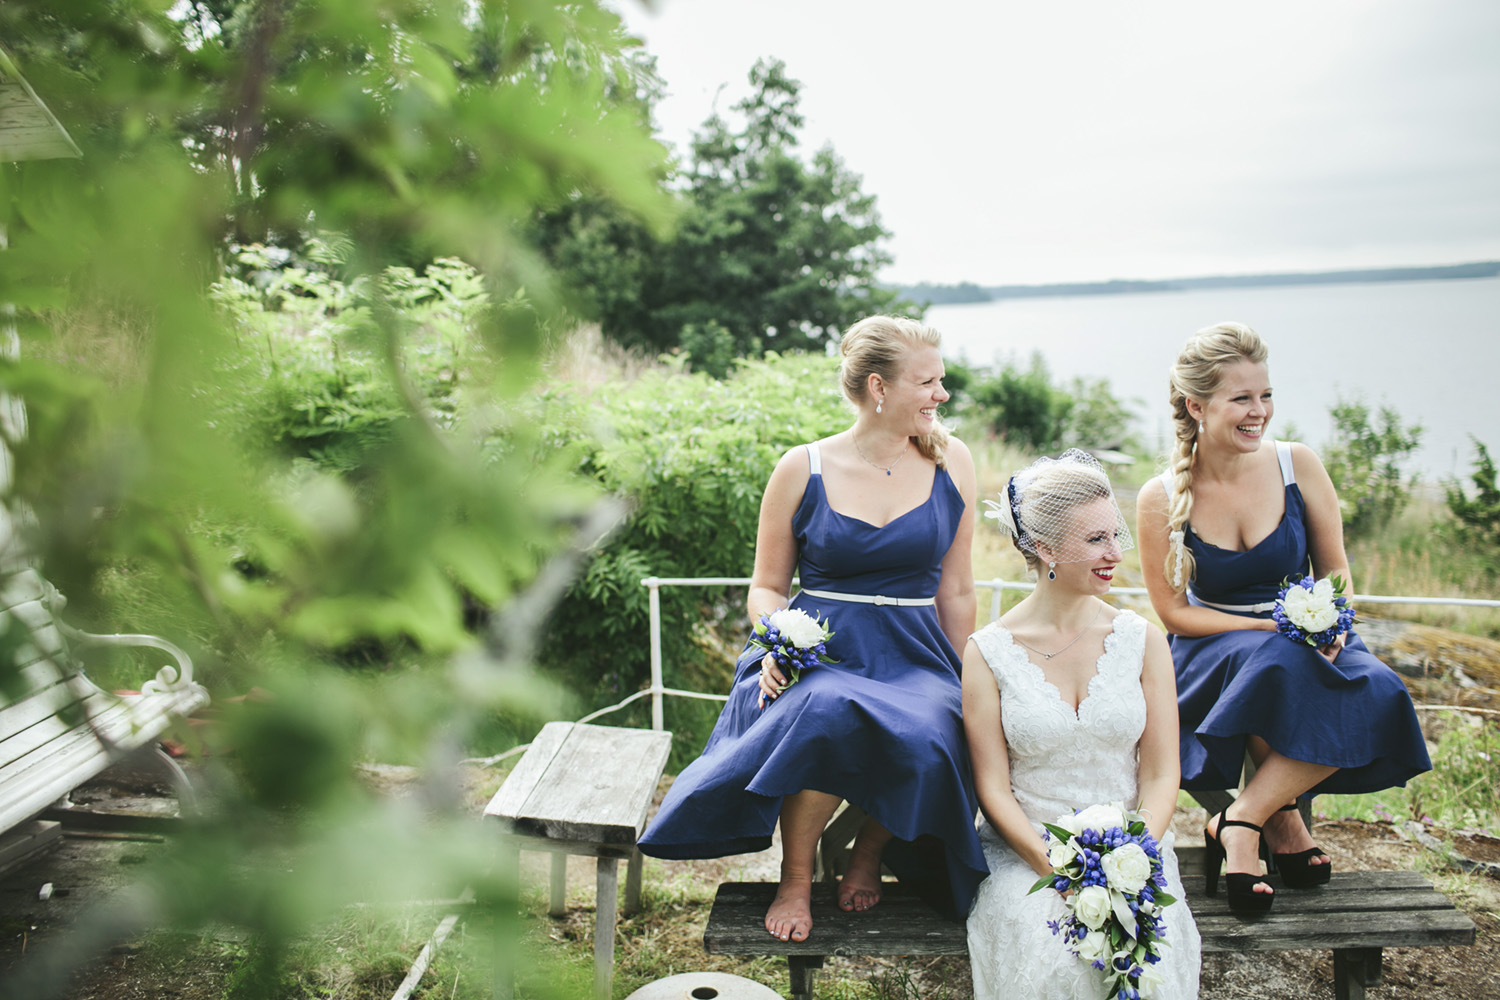 Brandon_werth_Sweden_wedding_Photographer_baltic_sea_58.jpg